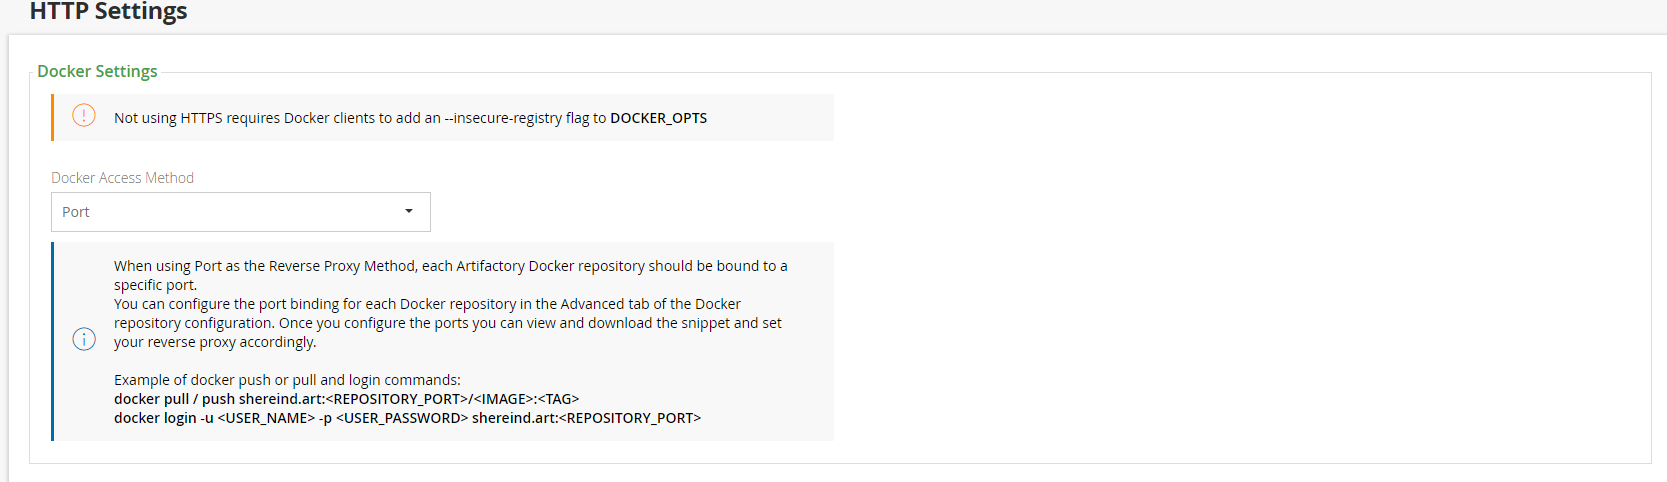 Cannot get docker repository